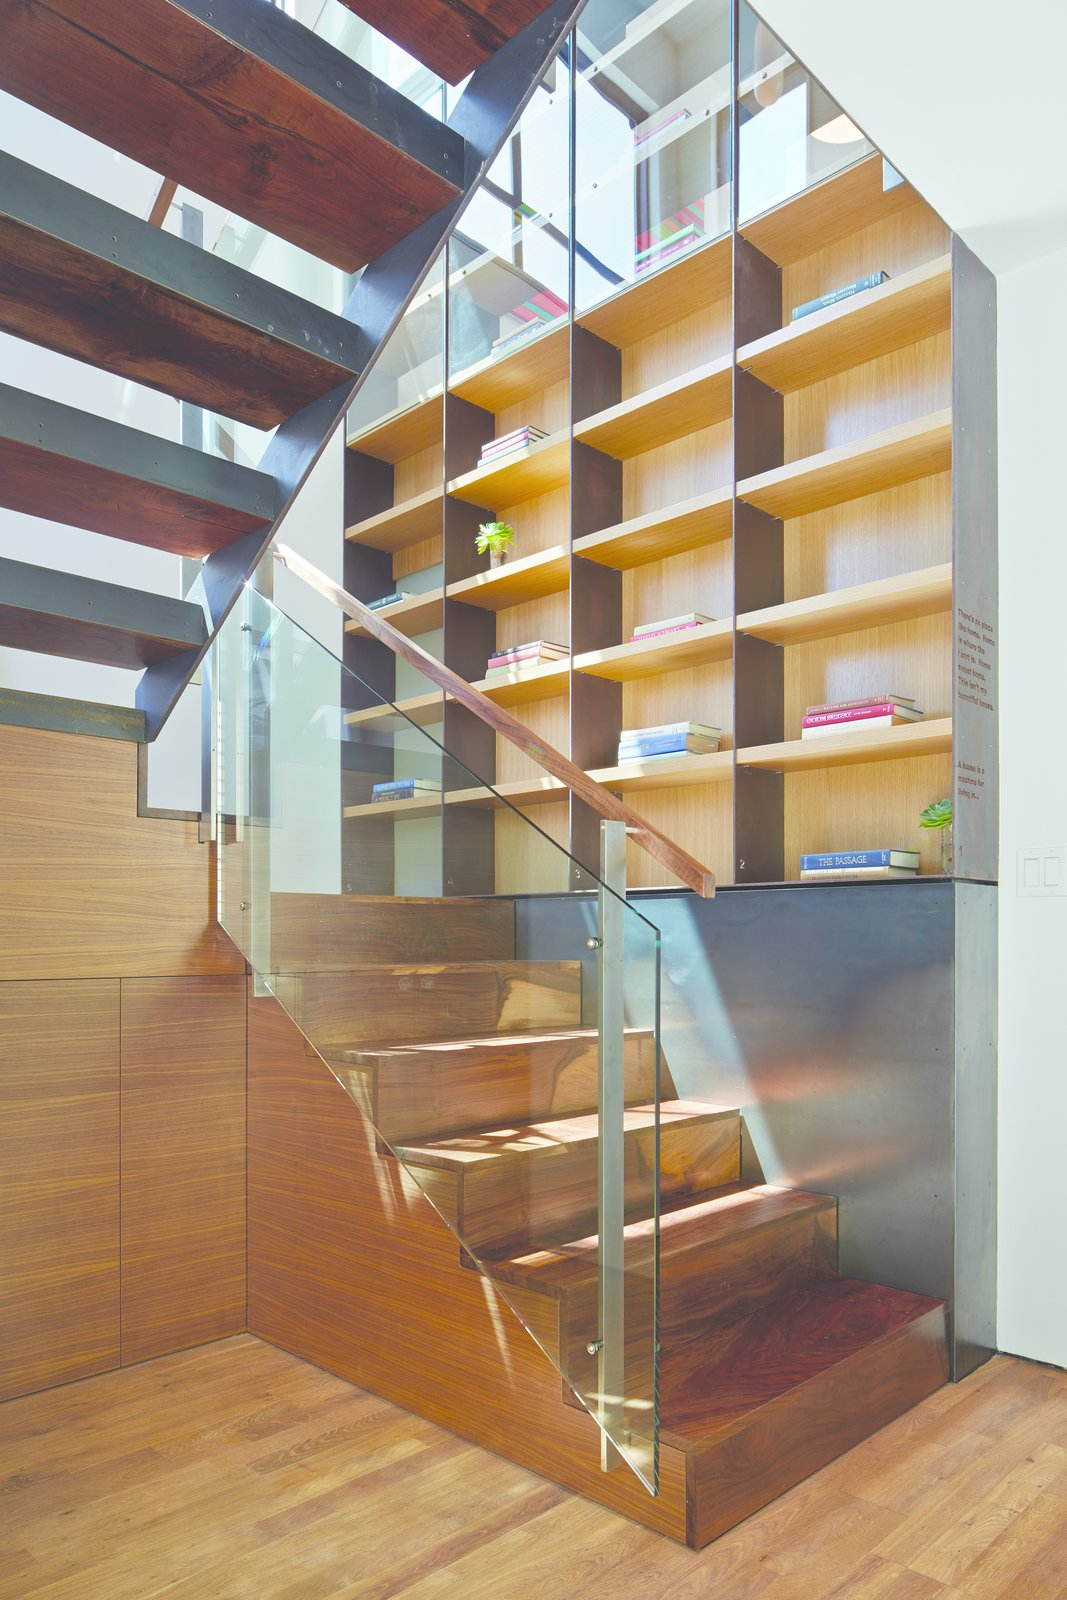 """""""The rear unit was about 90 percent rebuilt,"""" Zack says. """"We added a full floor of living space in what was the garage."""" Black walnut was used to make the home's stairs and handrails.  190+ Best Modern Staircase Ideas from A San Francisco Renovation Creates Two Apartments from One"""